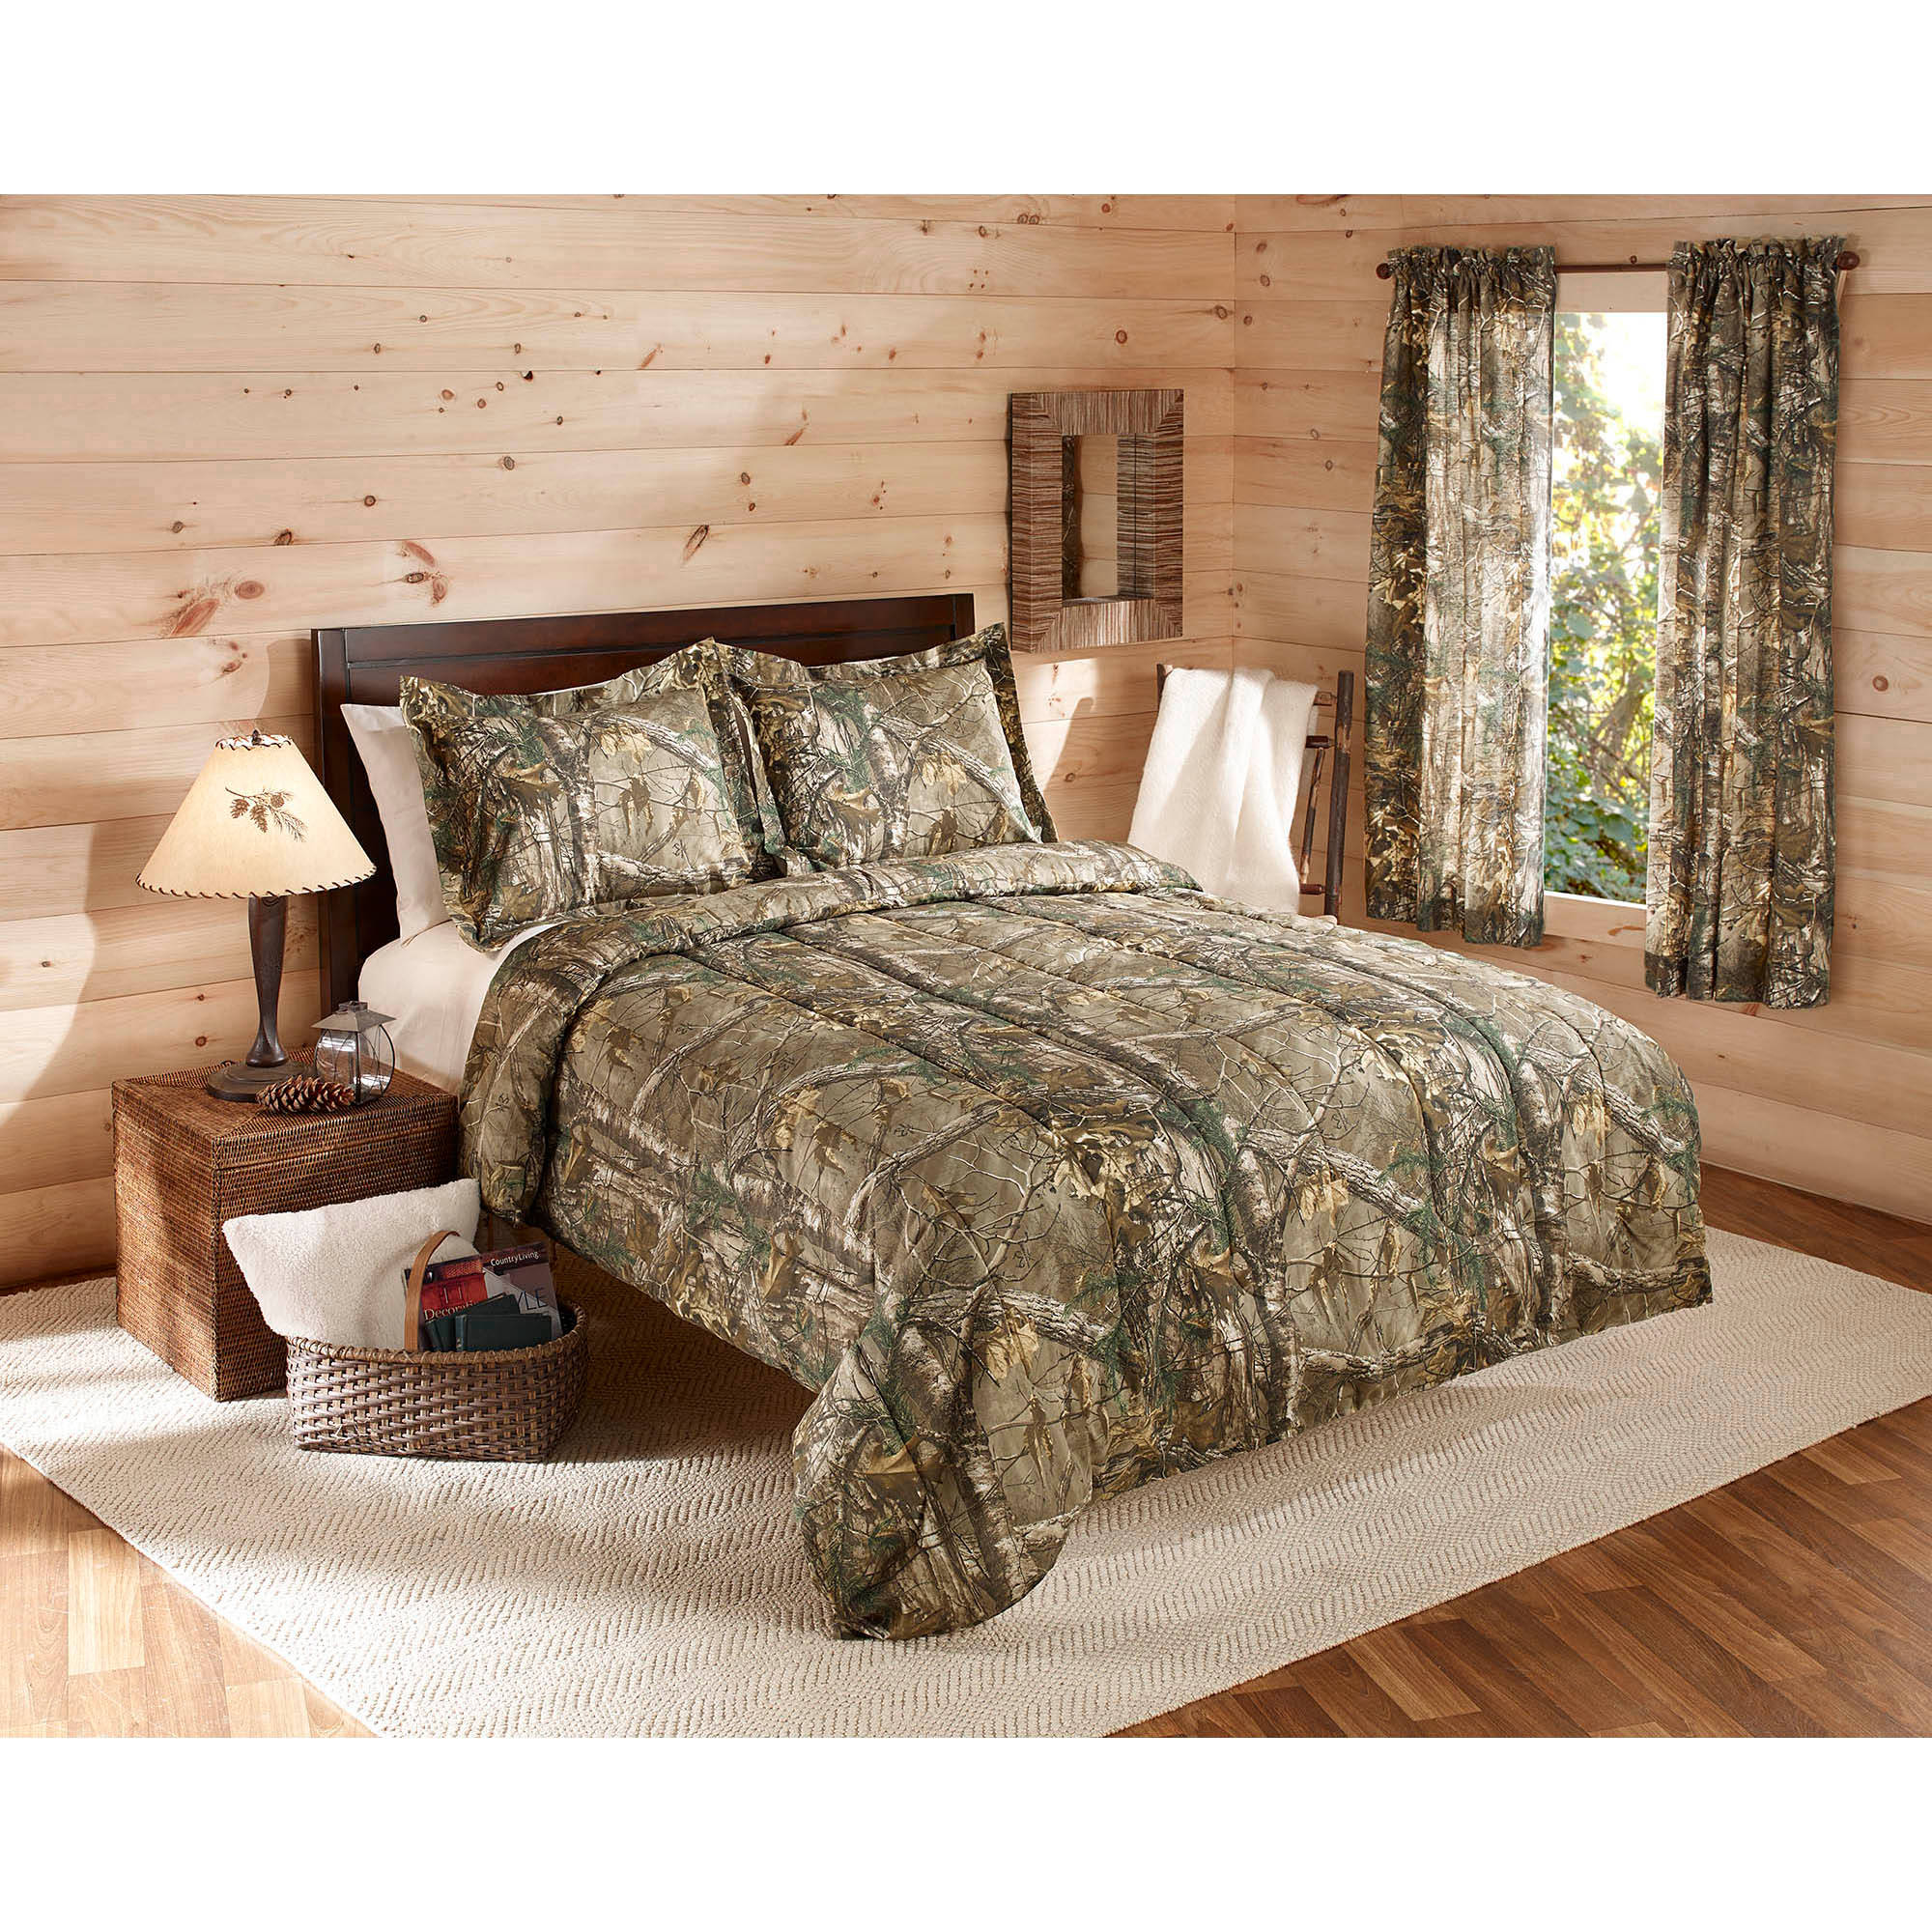 ip scotchgard classics comfort cover walmart sleep number com comforter